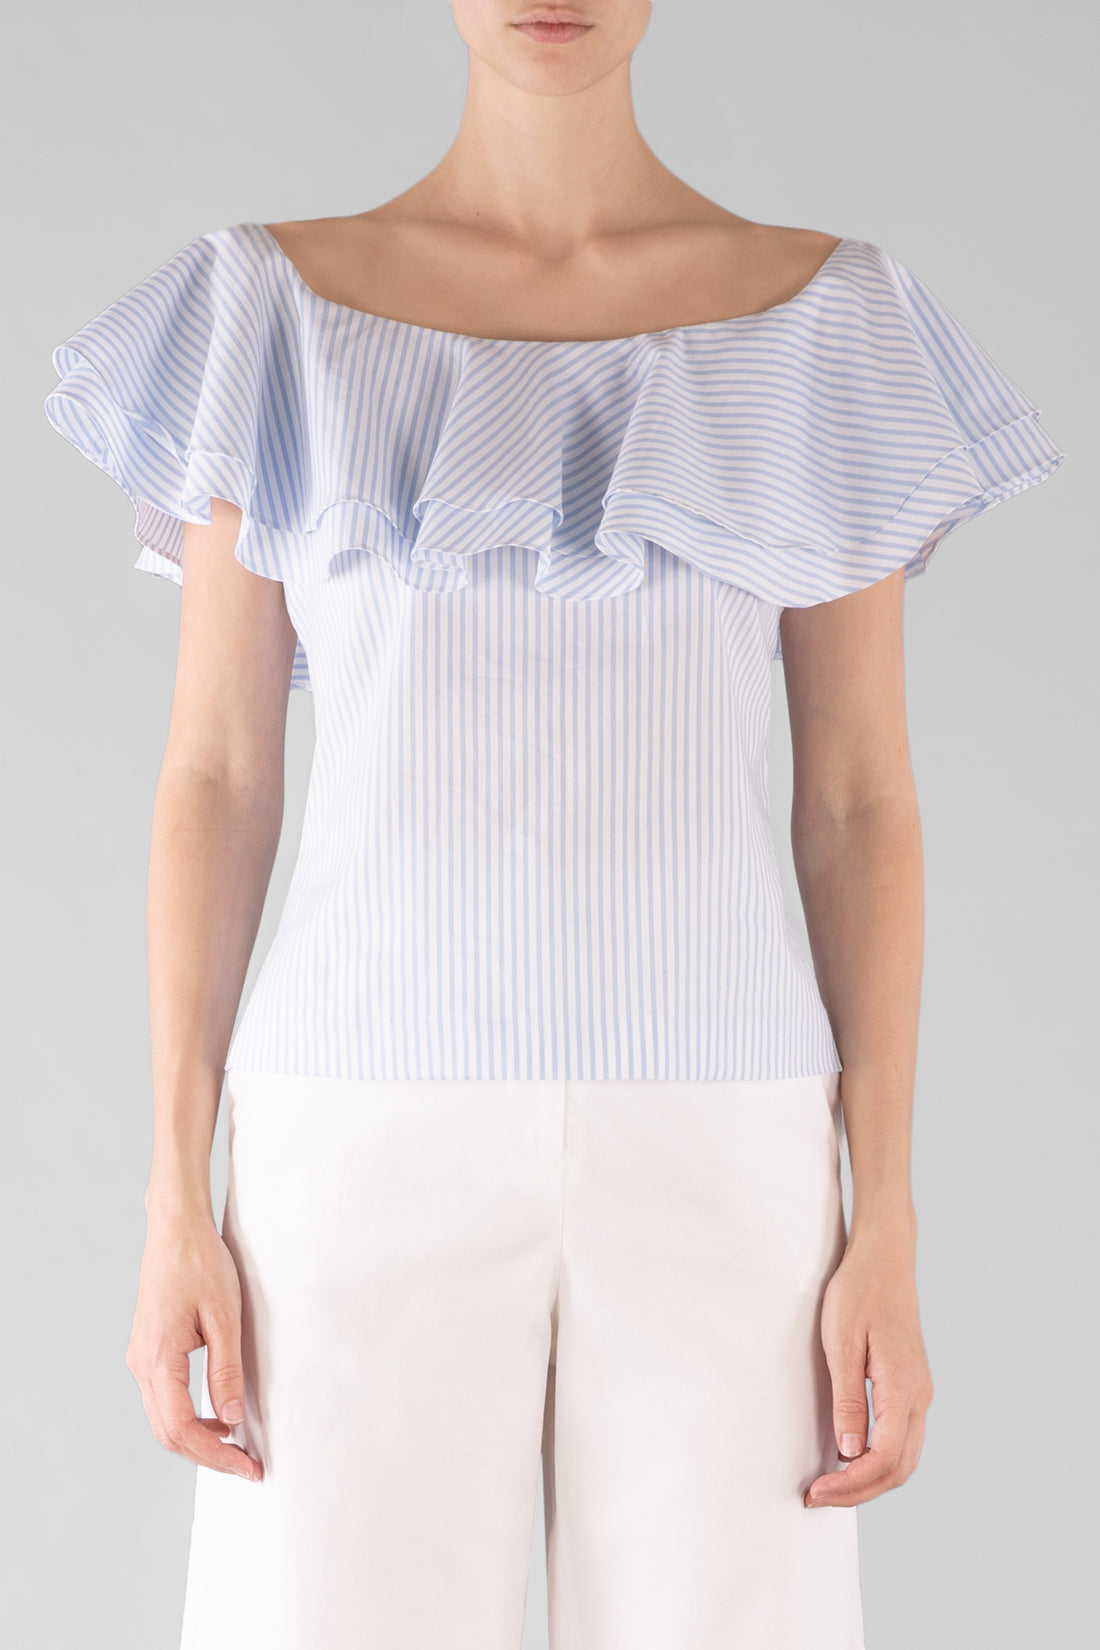 BABY BLUES FRILL TOP